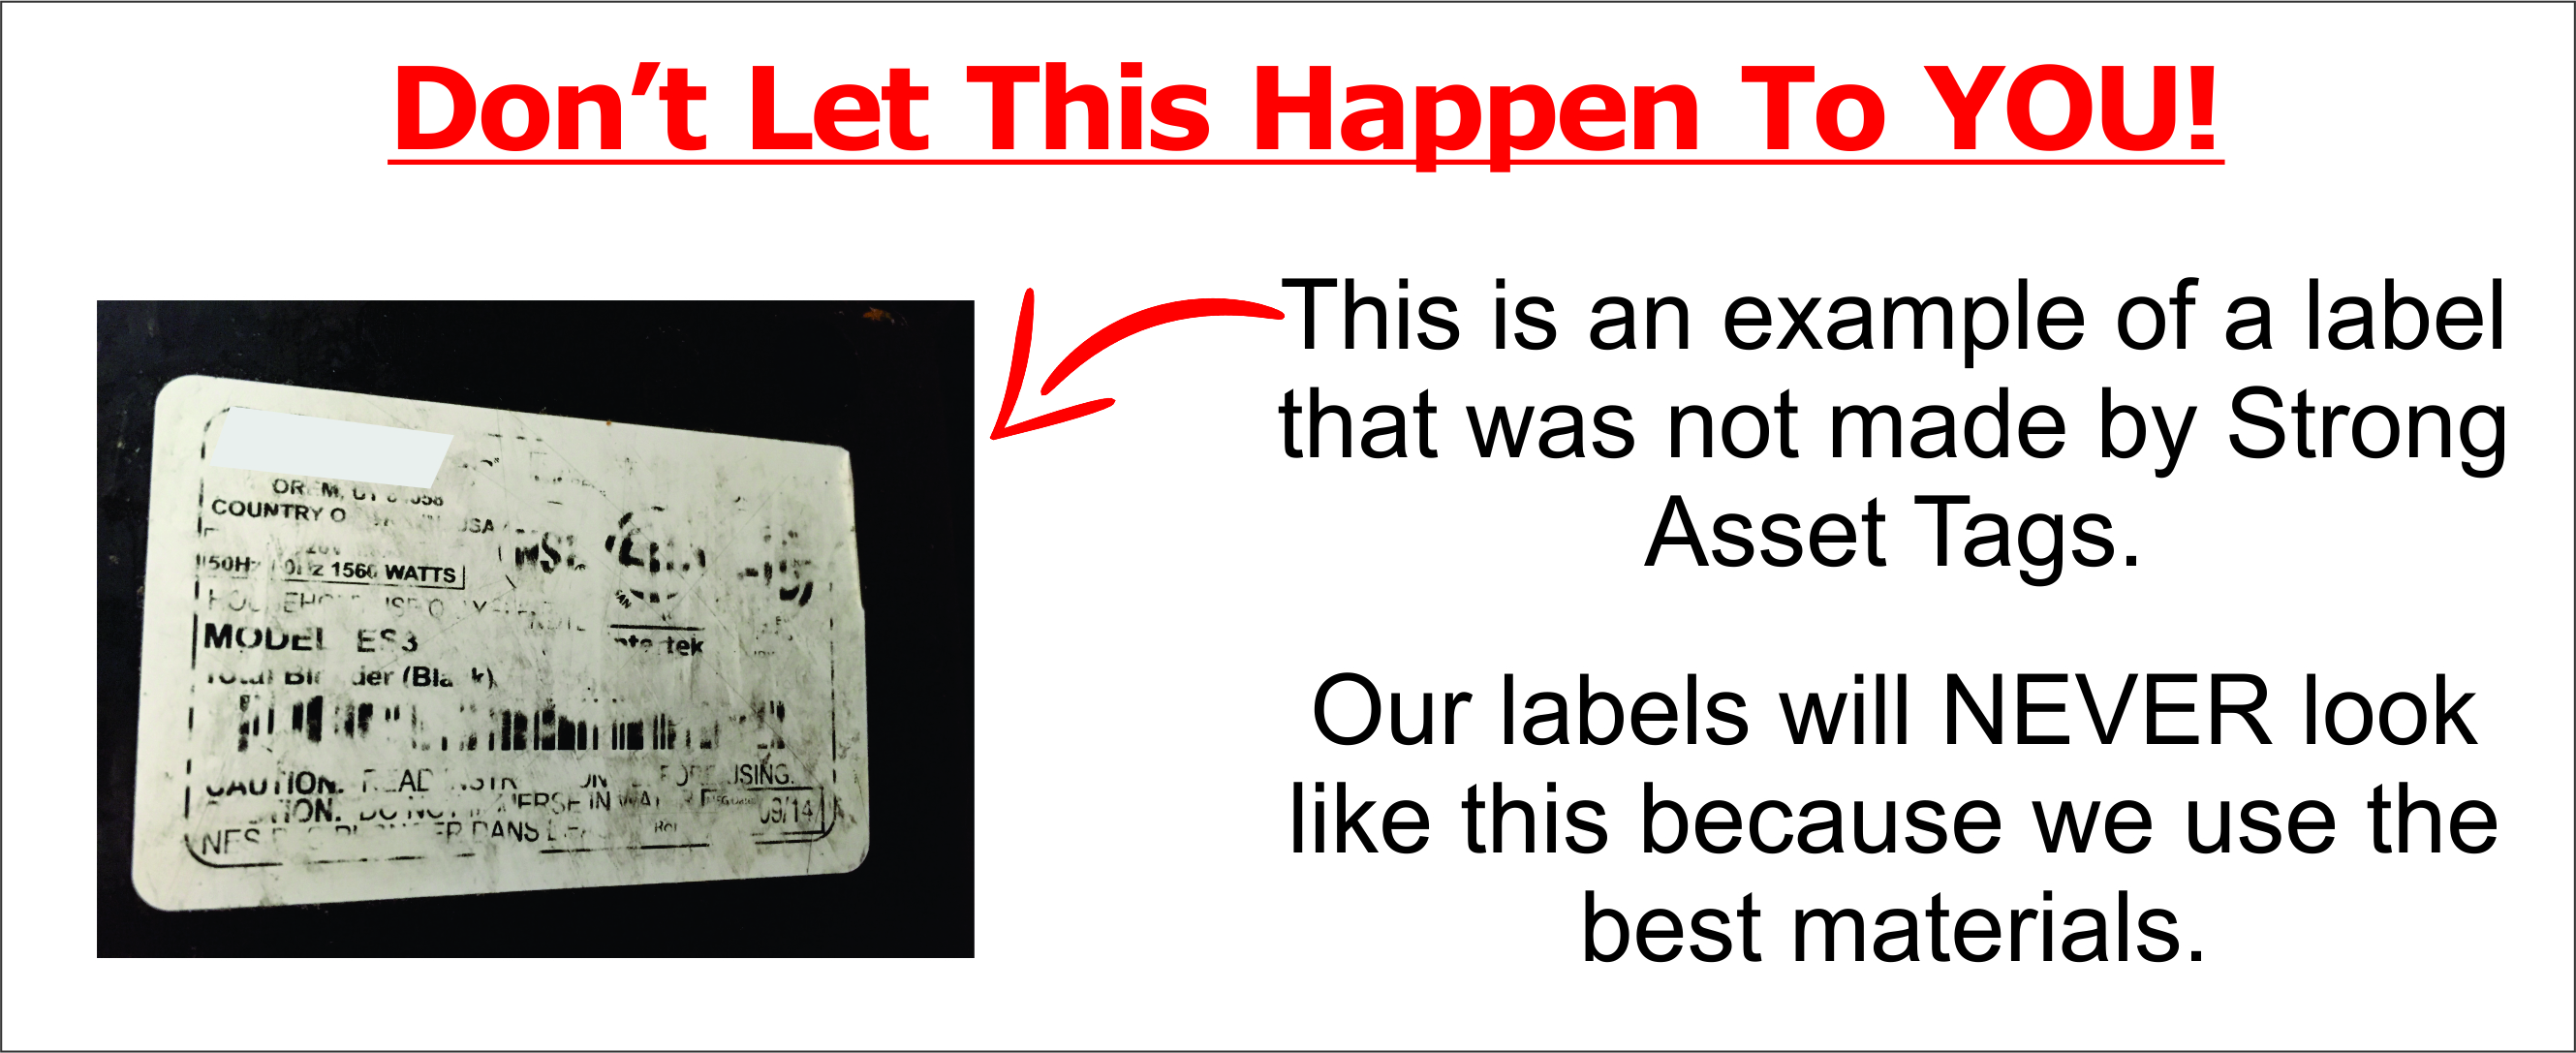 This image shows an asset tag that failed